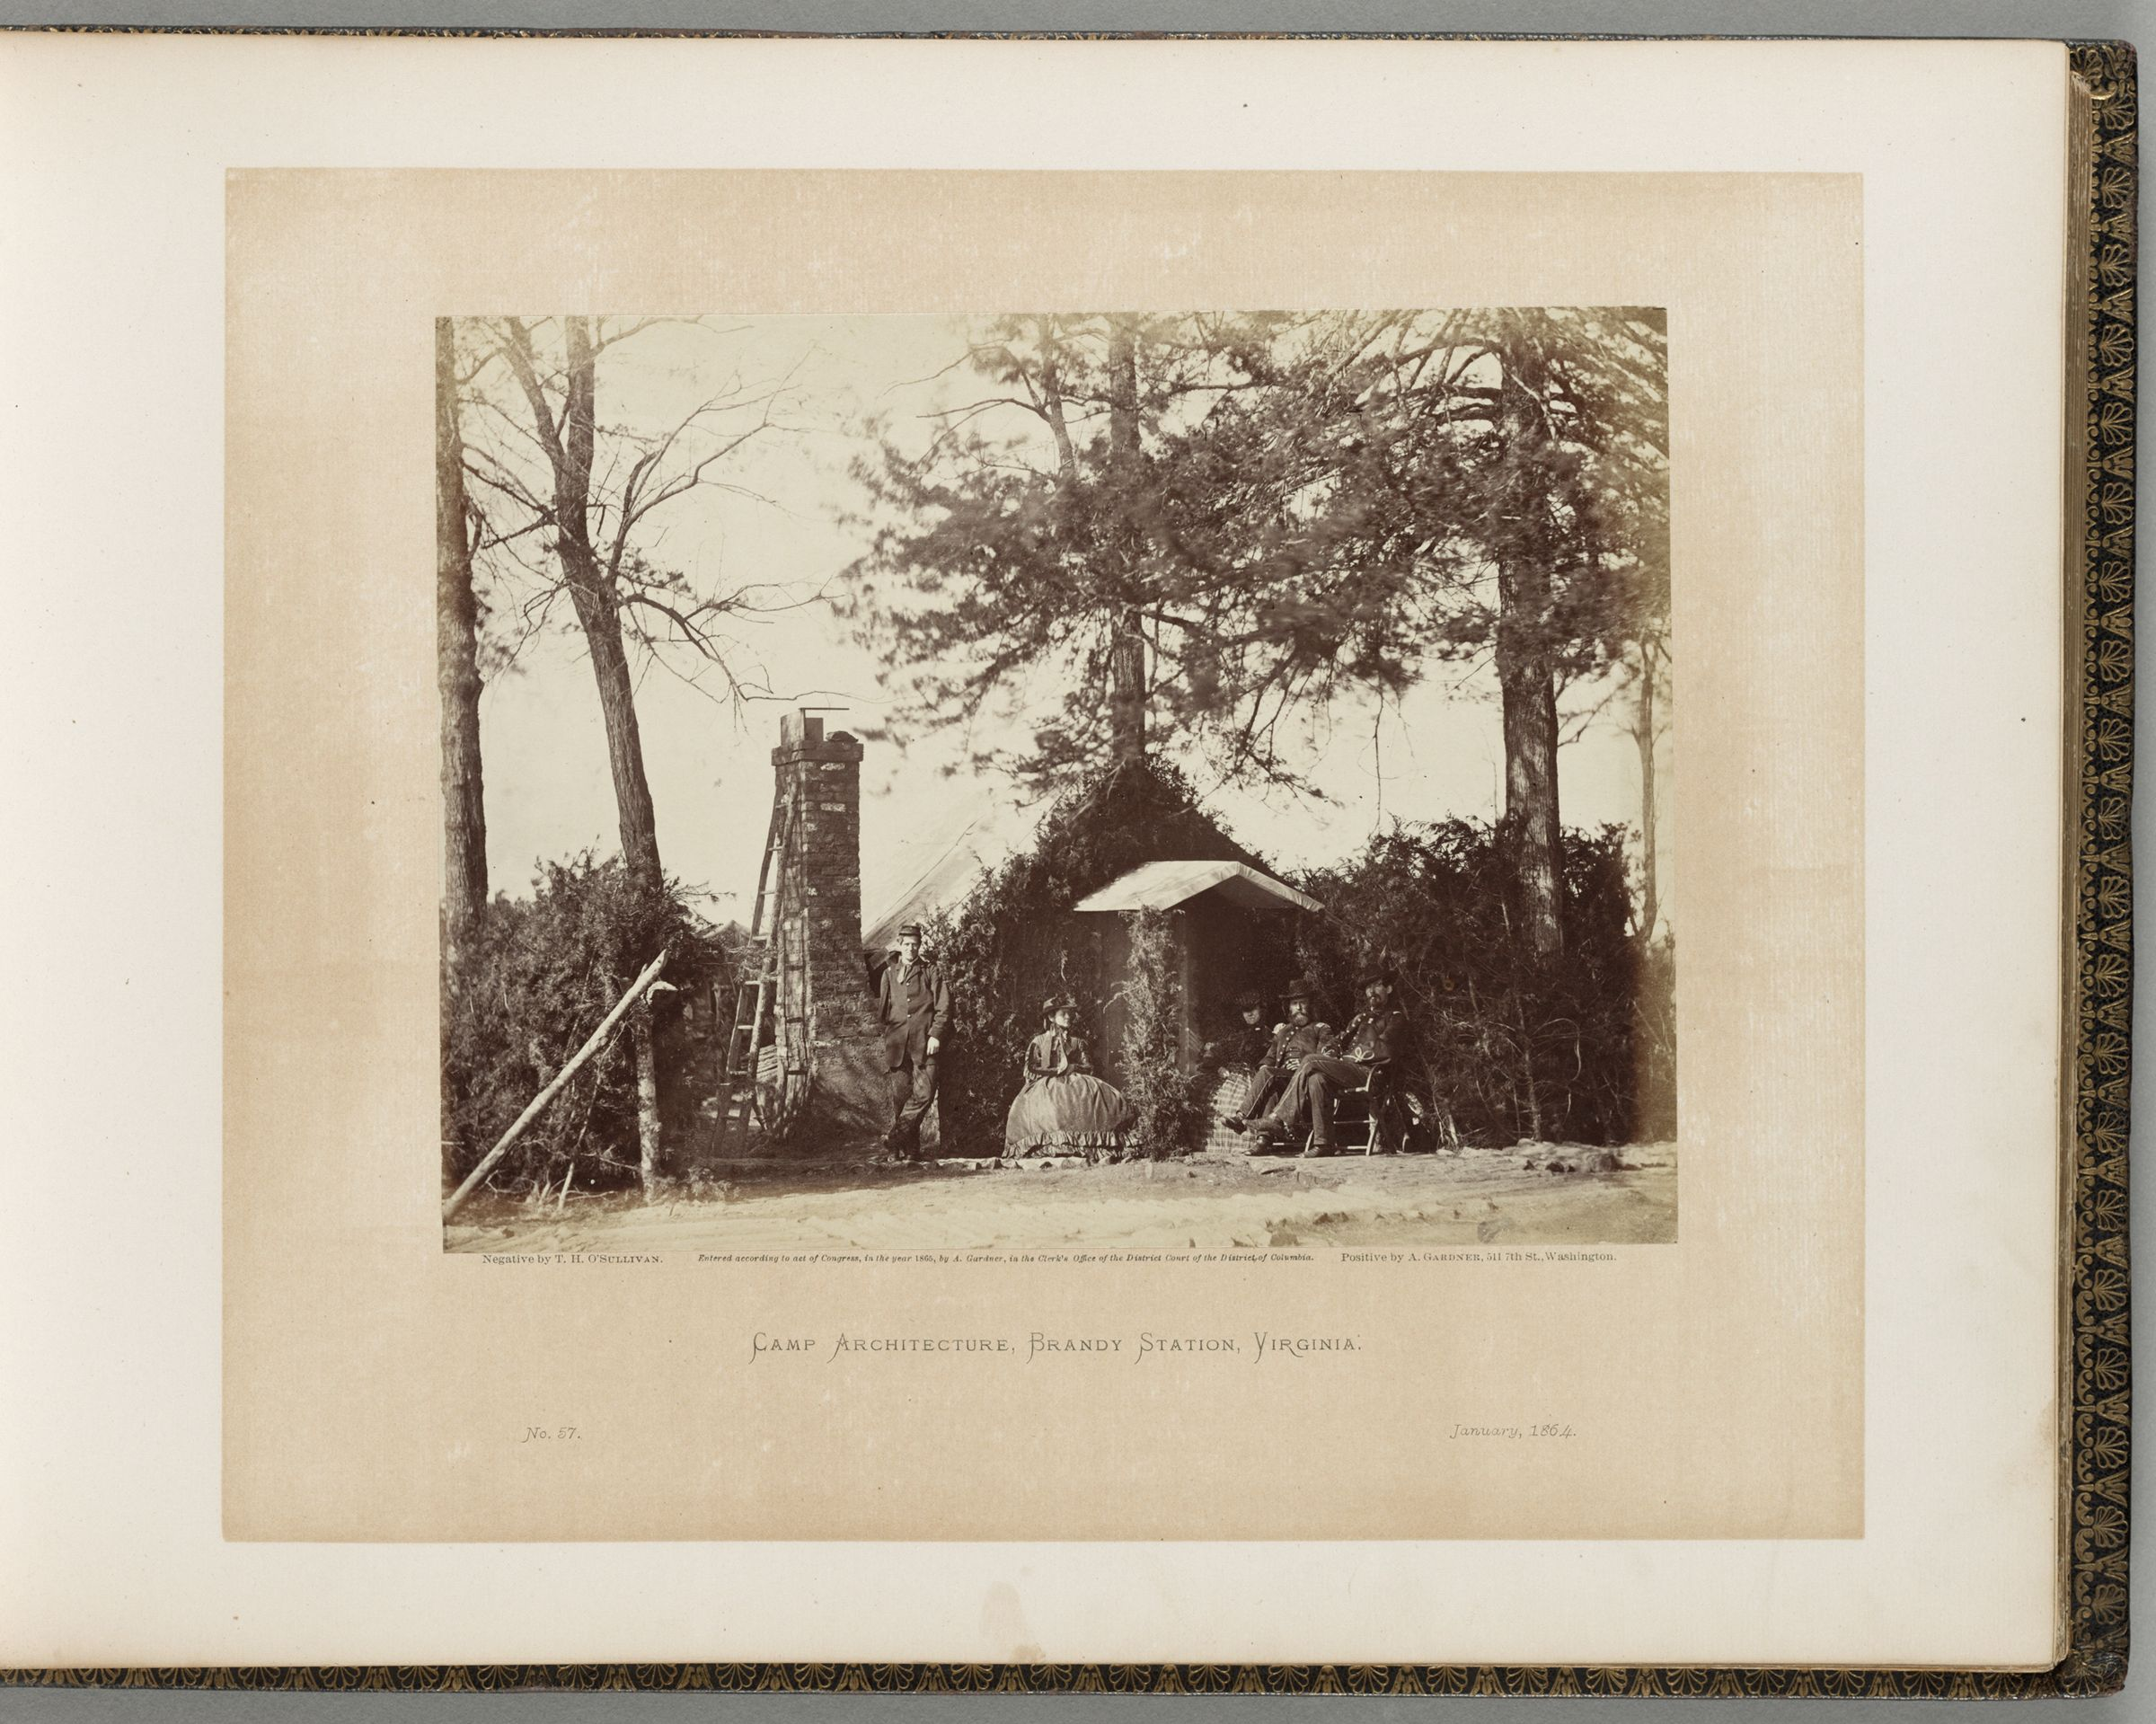 Camp Architecture, Brandy Station, Virginia